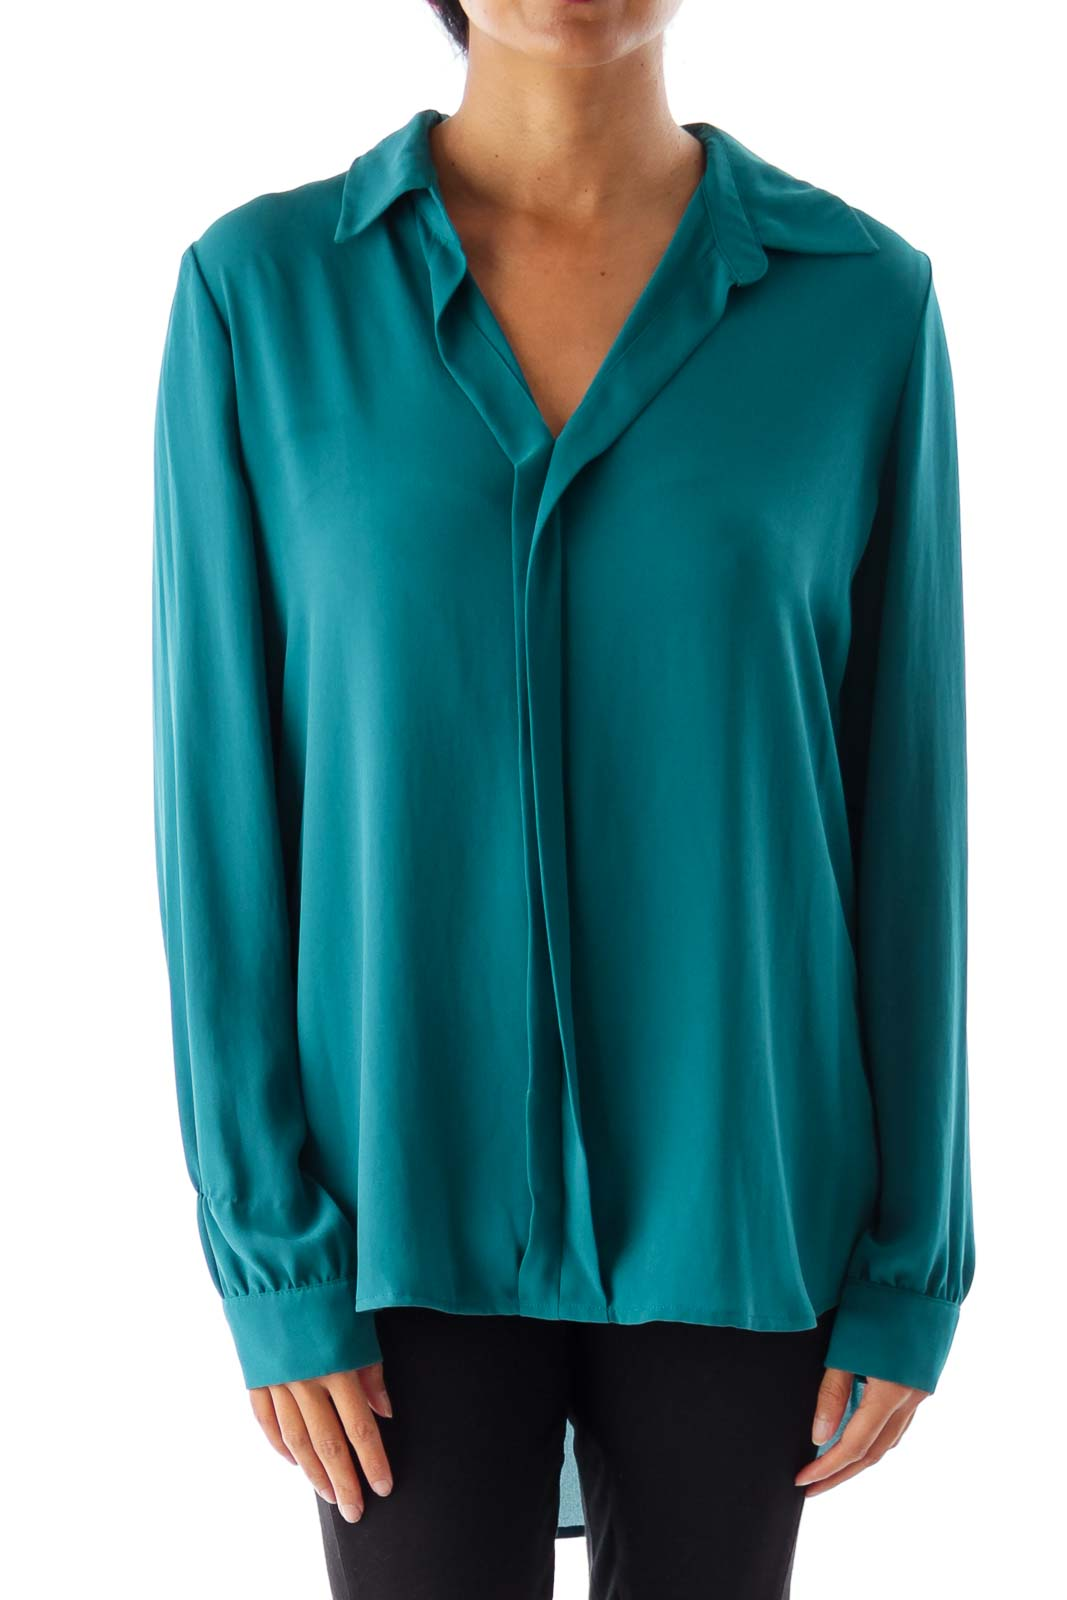 Emerald Green Blouse Front